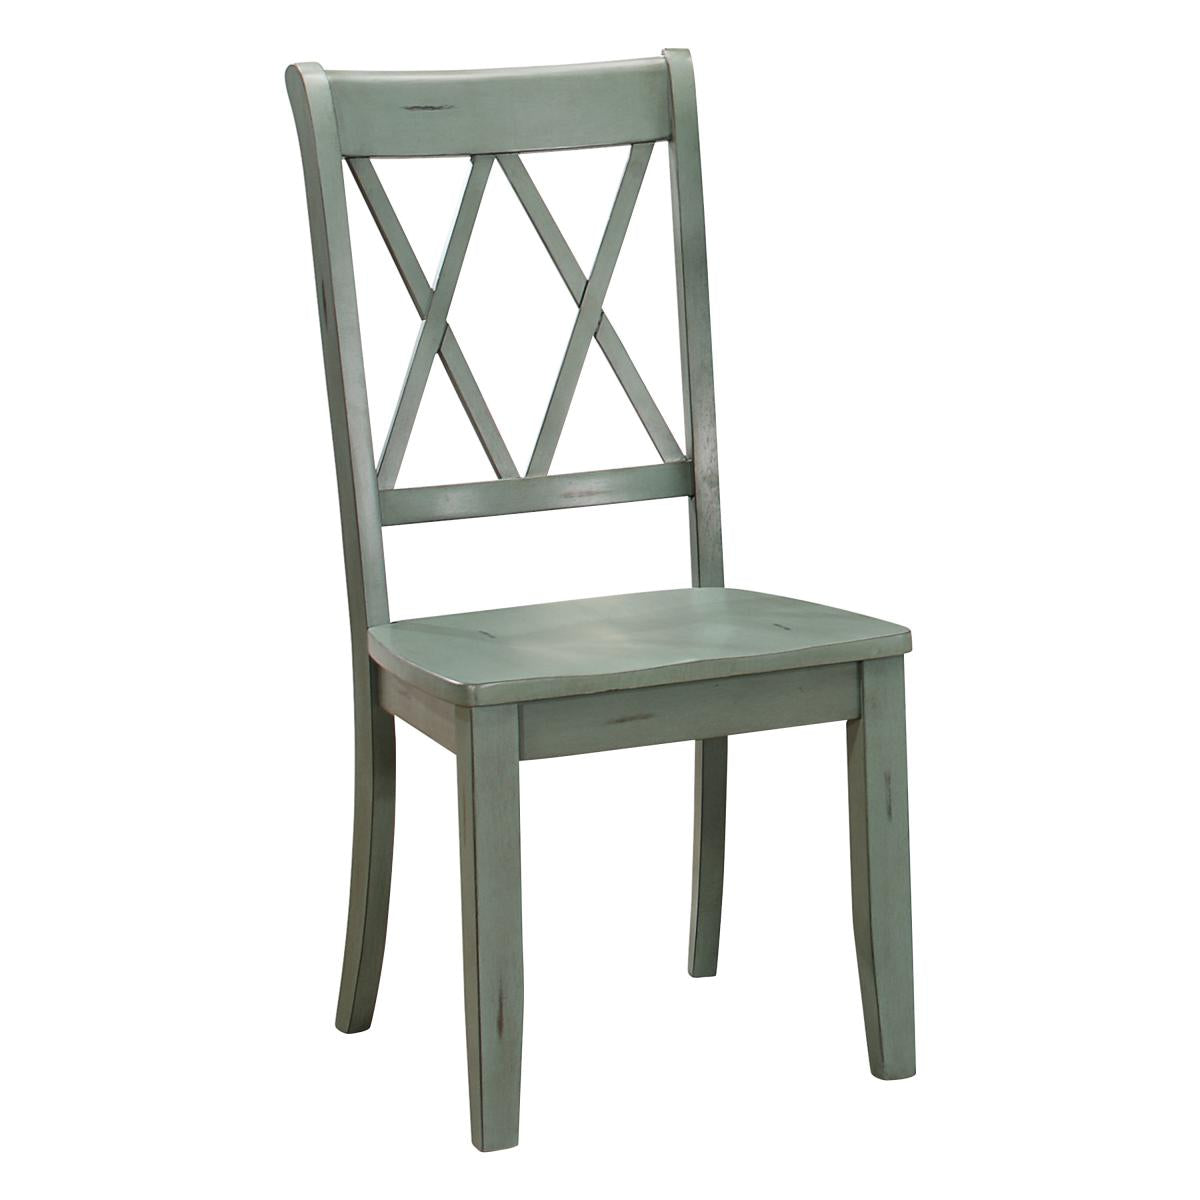 Homelegance Janina Teal Wood Finish 2 Piece Dining Chair